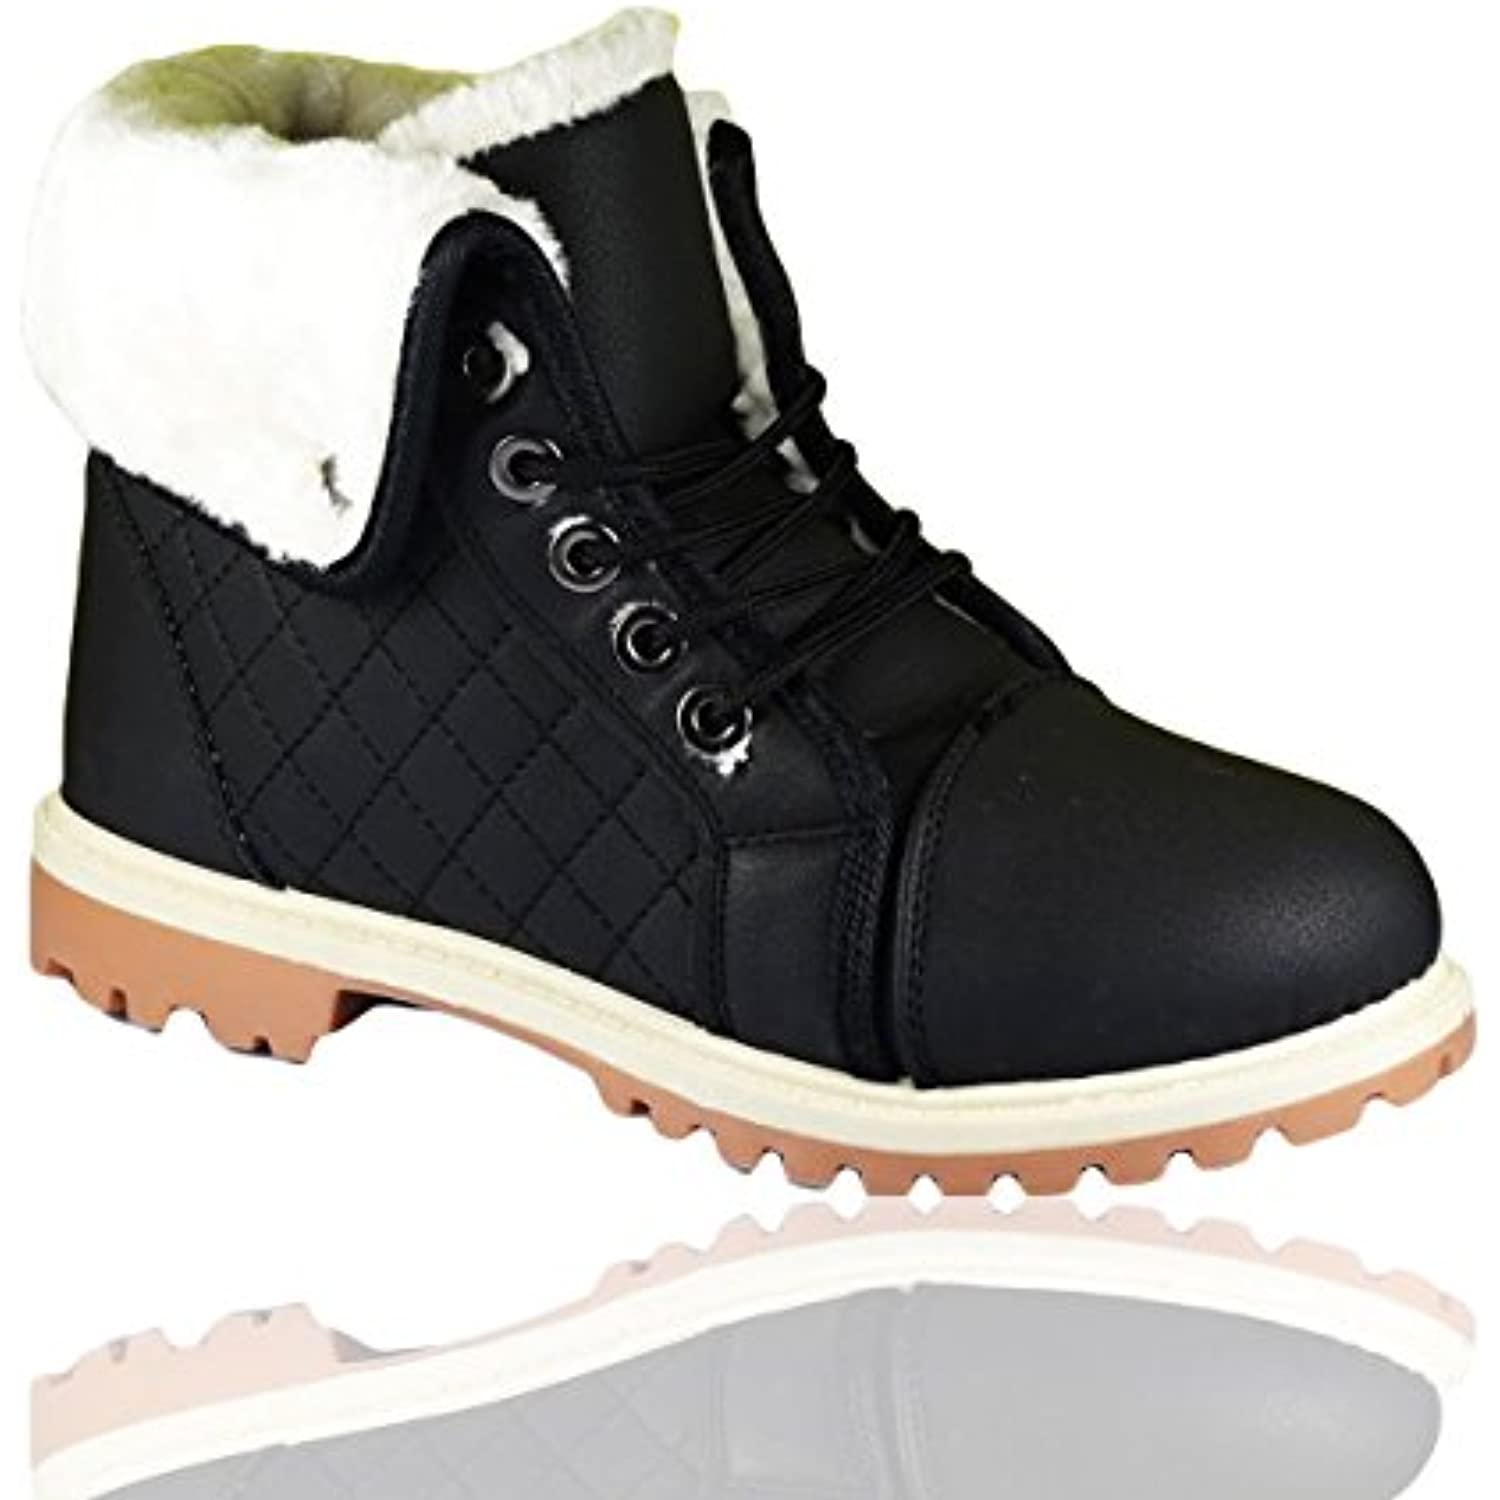 RoMaAn'S IDeal FaShIoN Ankle Boots, Bottes pour Femme - - - B078RCK2MS - 7929b7